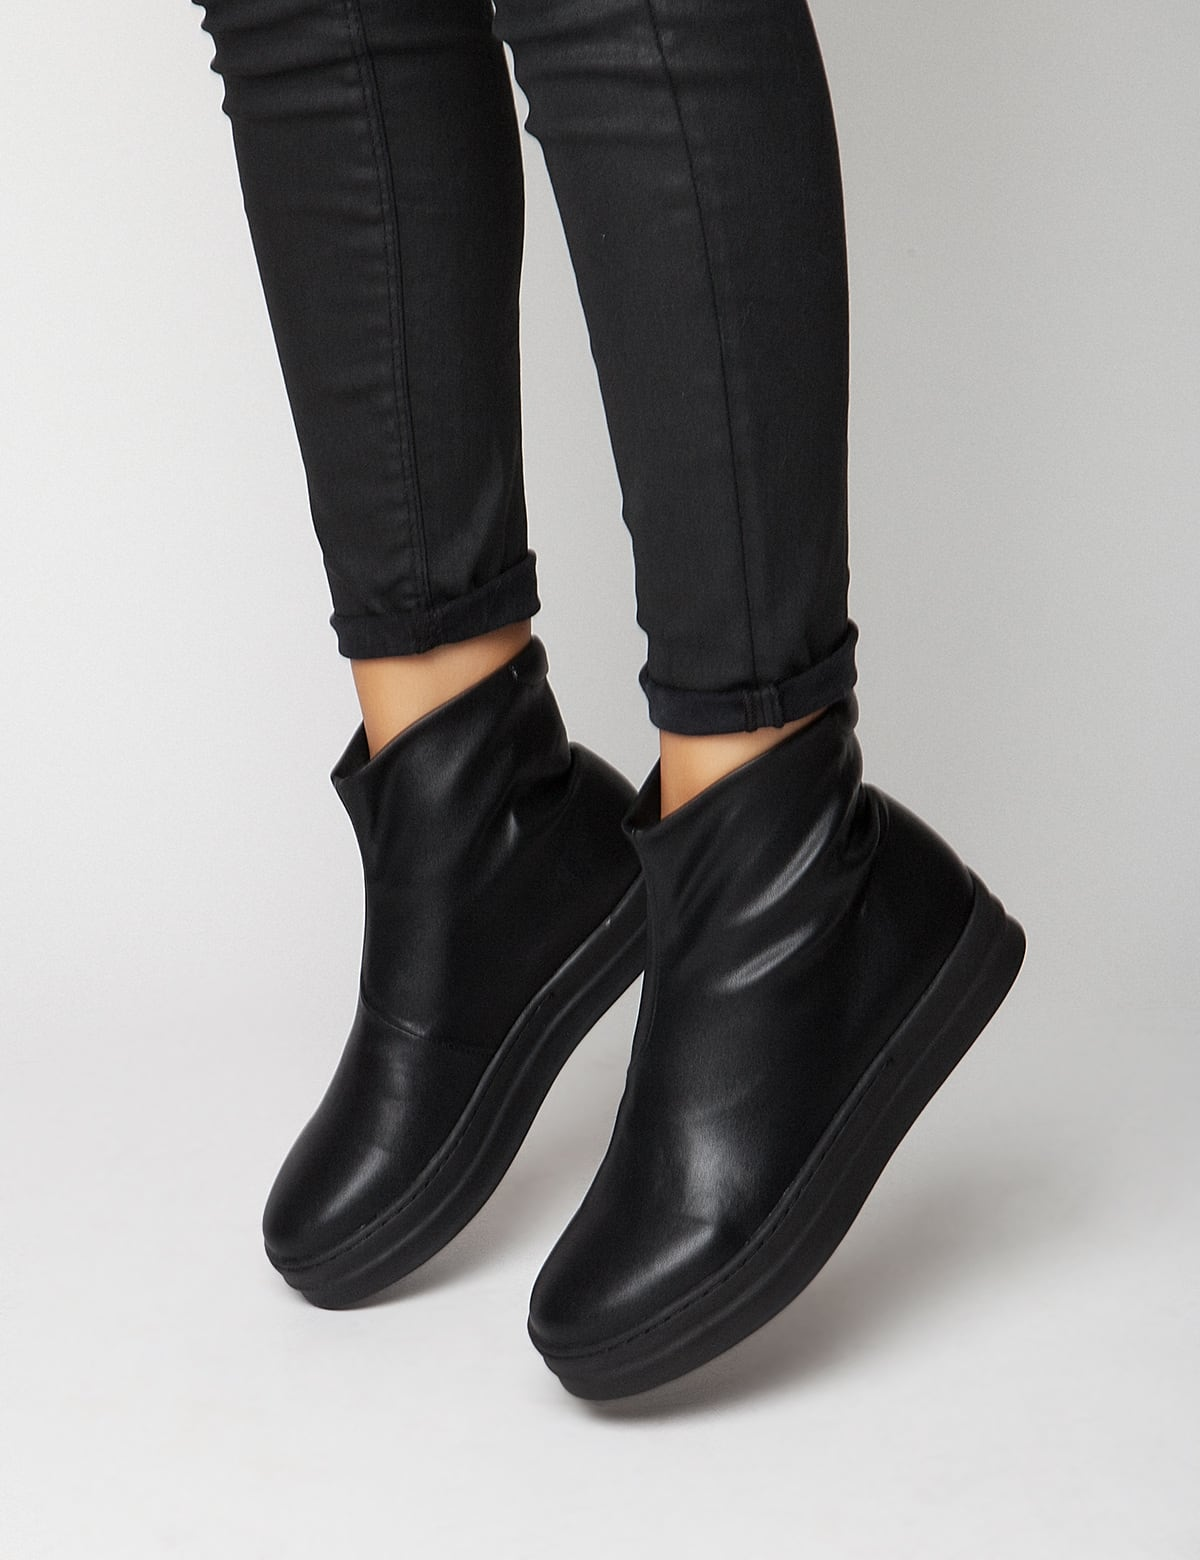 Lara Black Leather mrs fred   sneakers